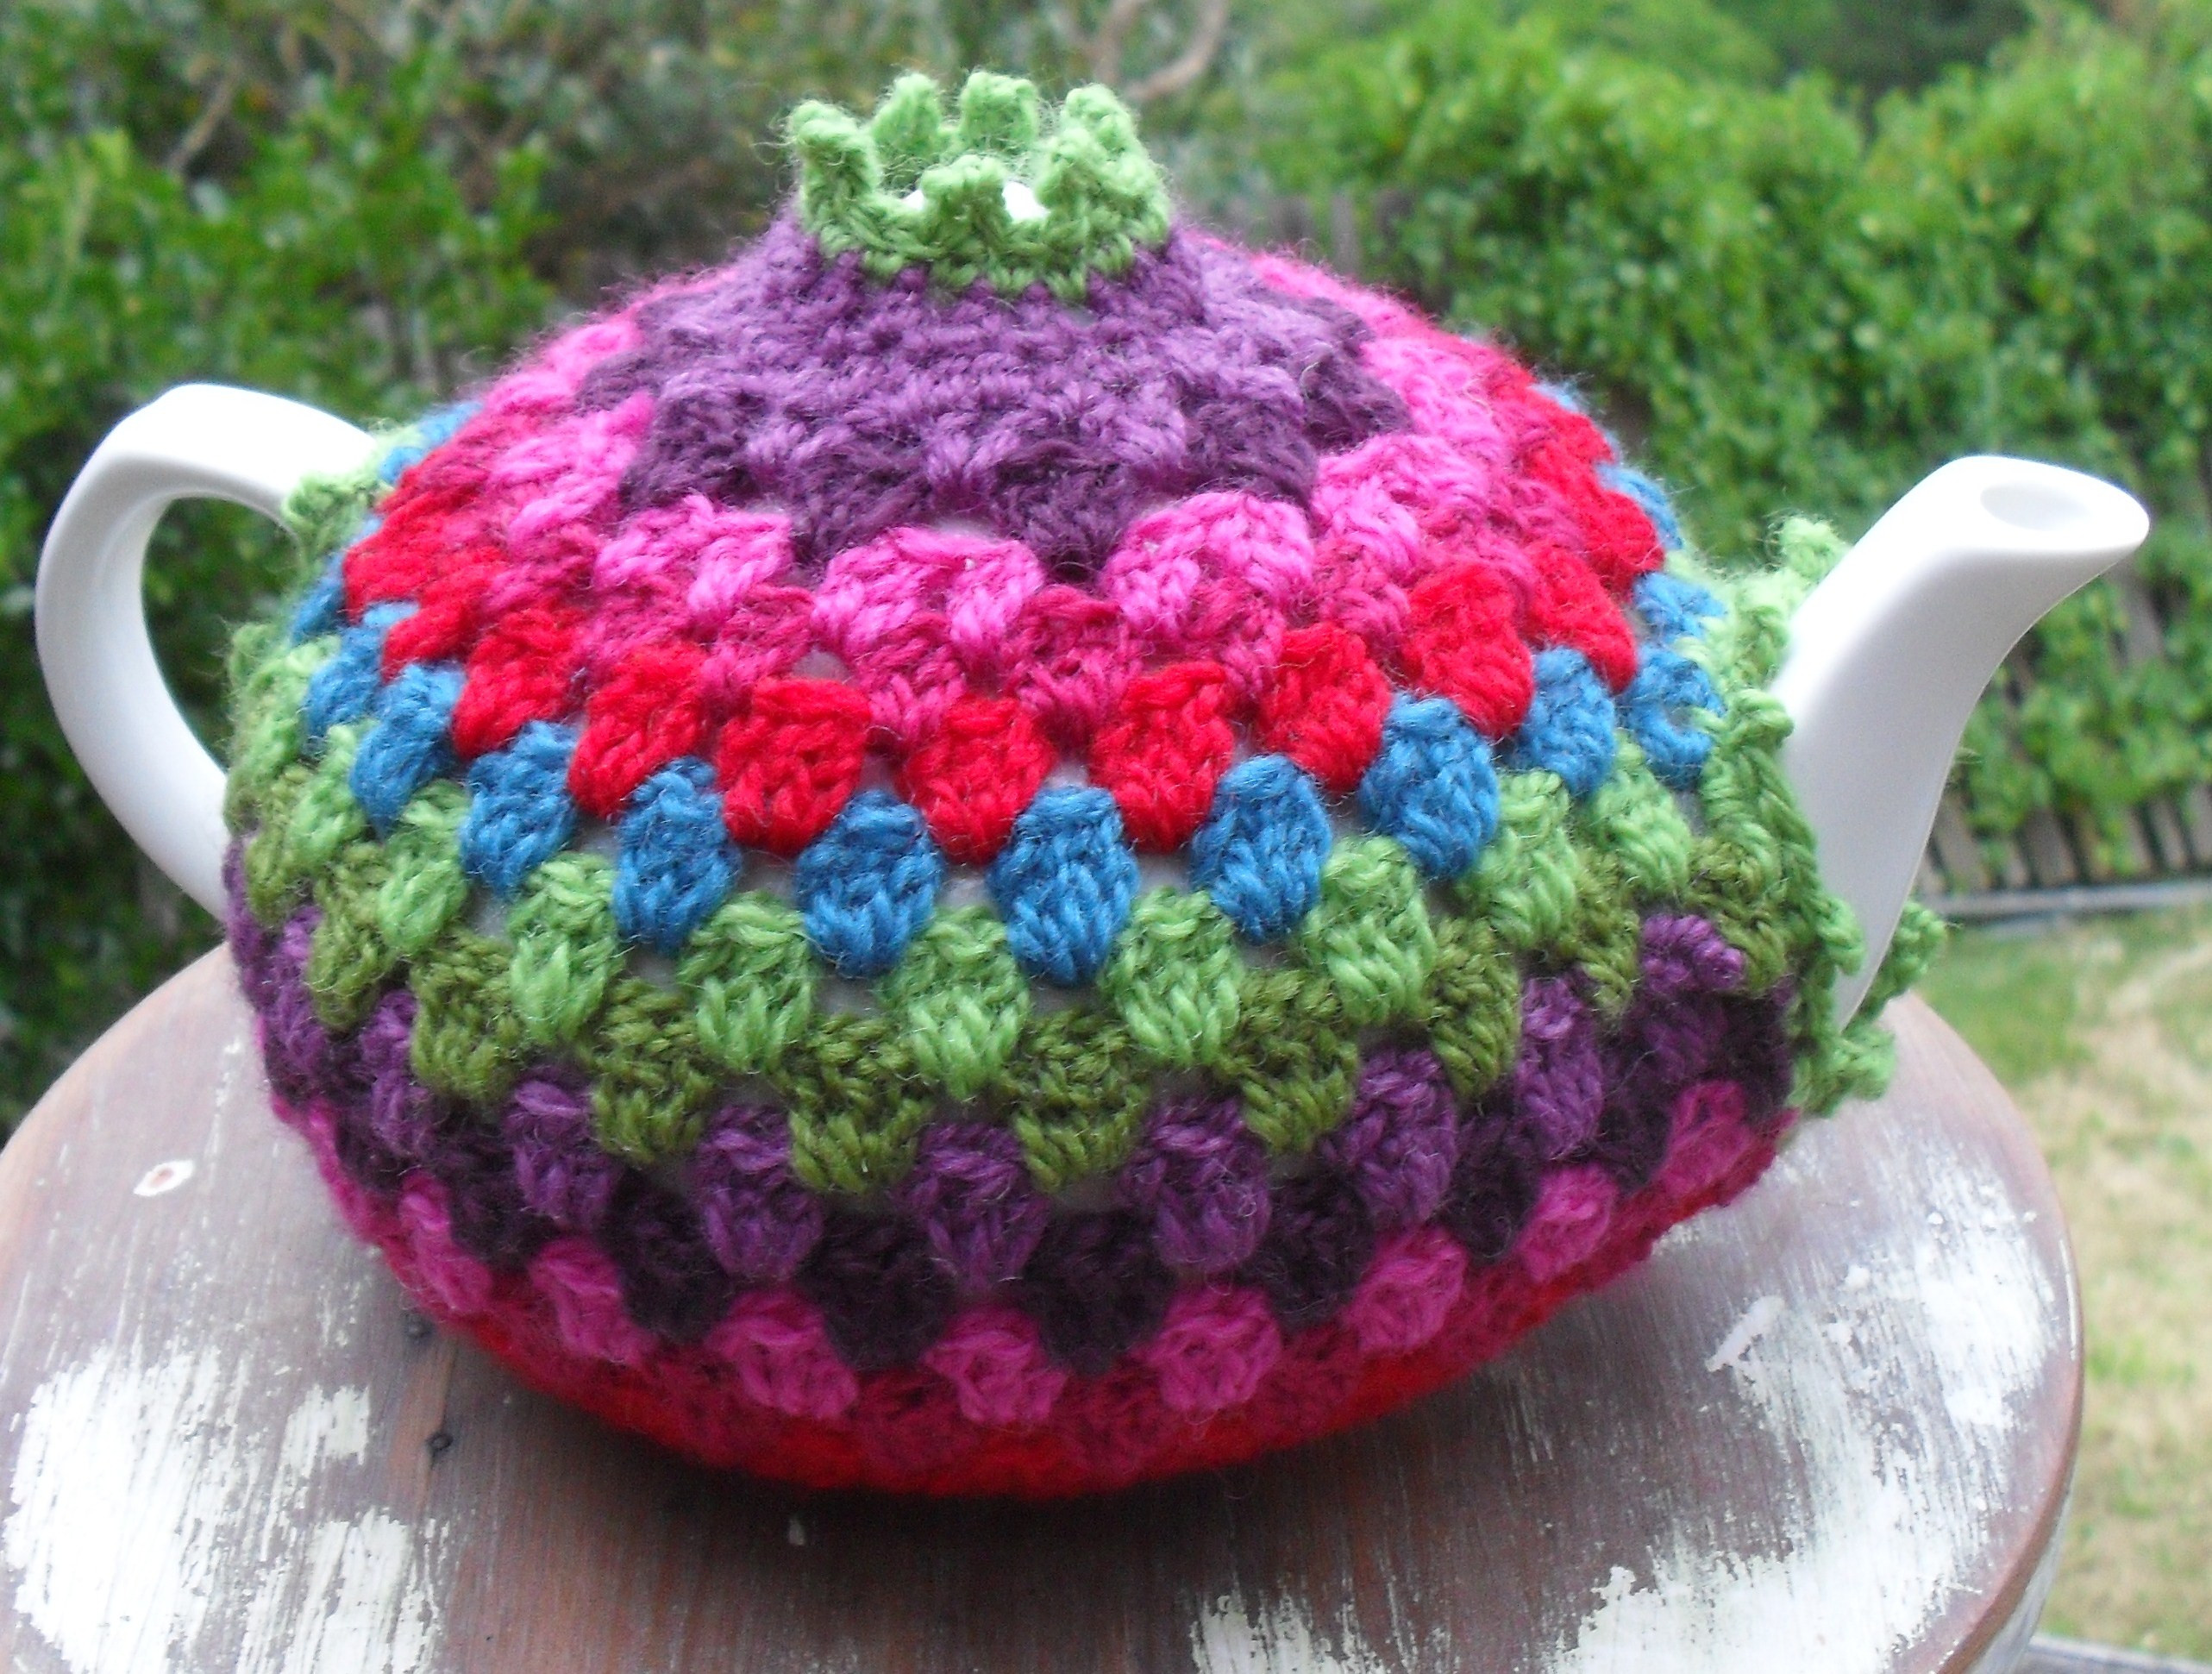 Knitting and Crochet Inspirational Crocheted Tea Cosy Pattern Crochet and Knitting Patterns Of Amazing 45 Photos Knitting and Crochet